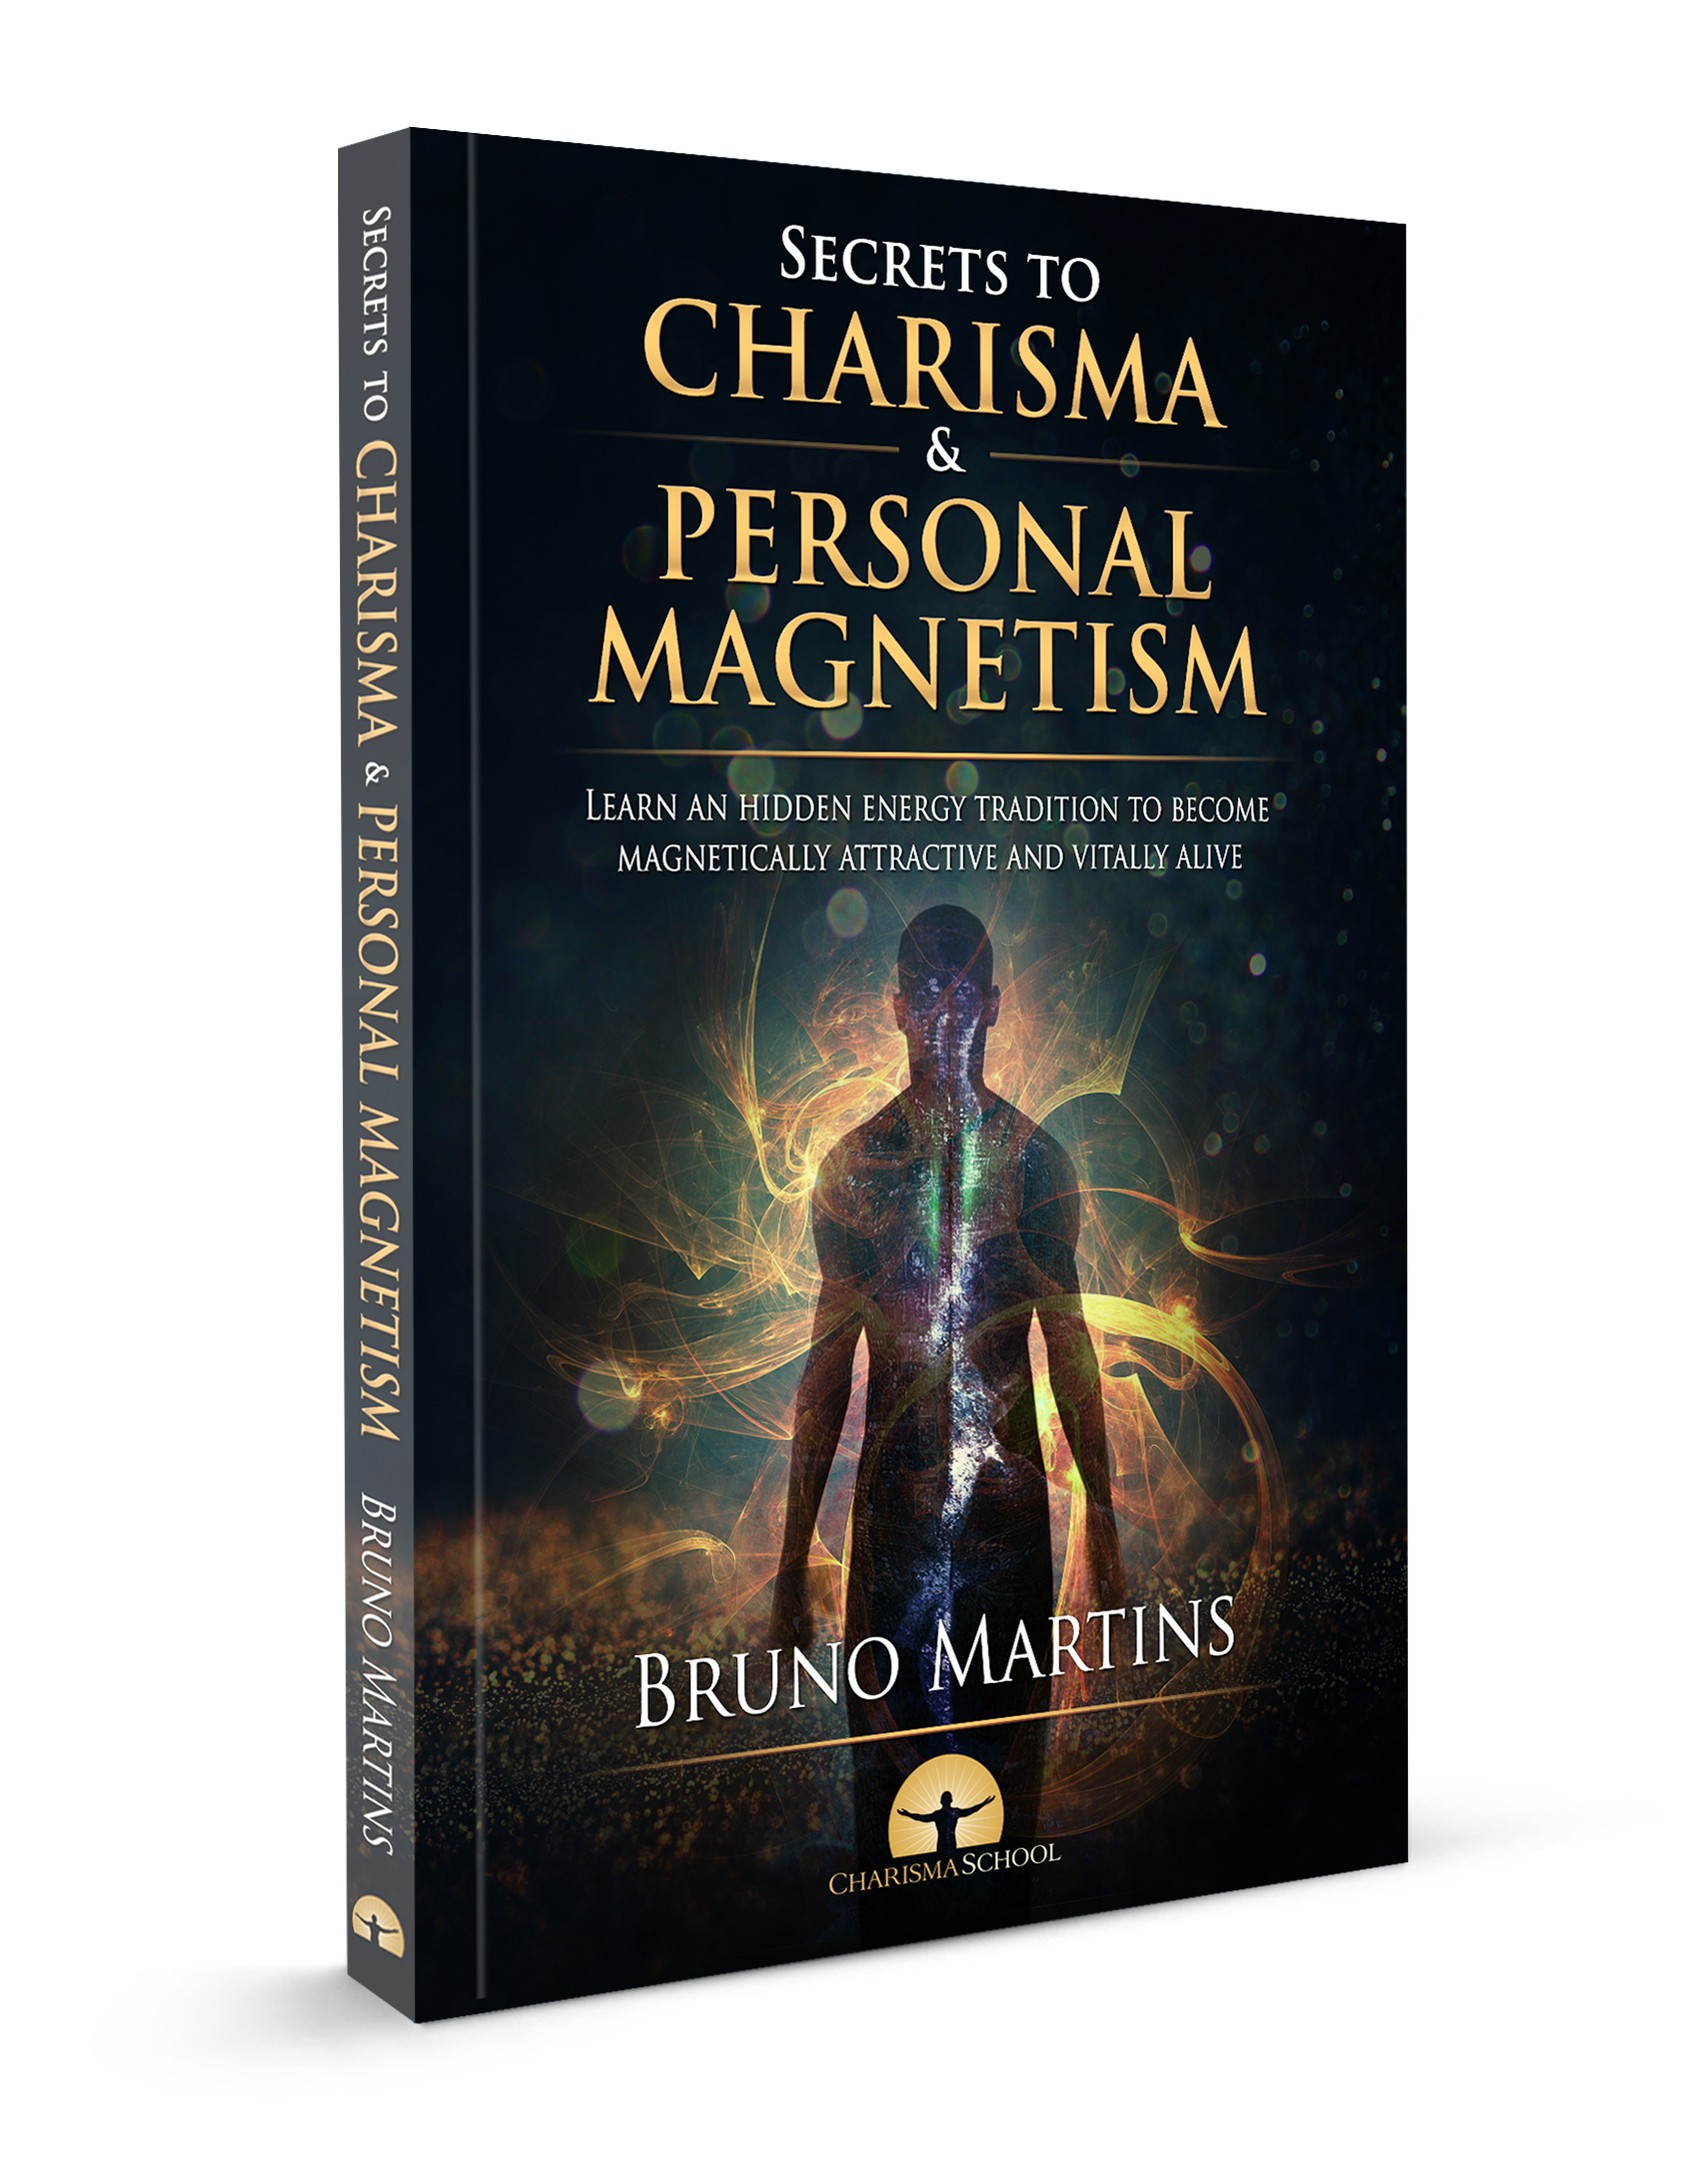 Design a Cover for a Personal Magnetism and Charisma Book!